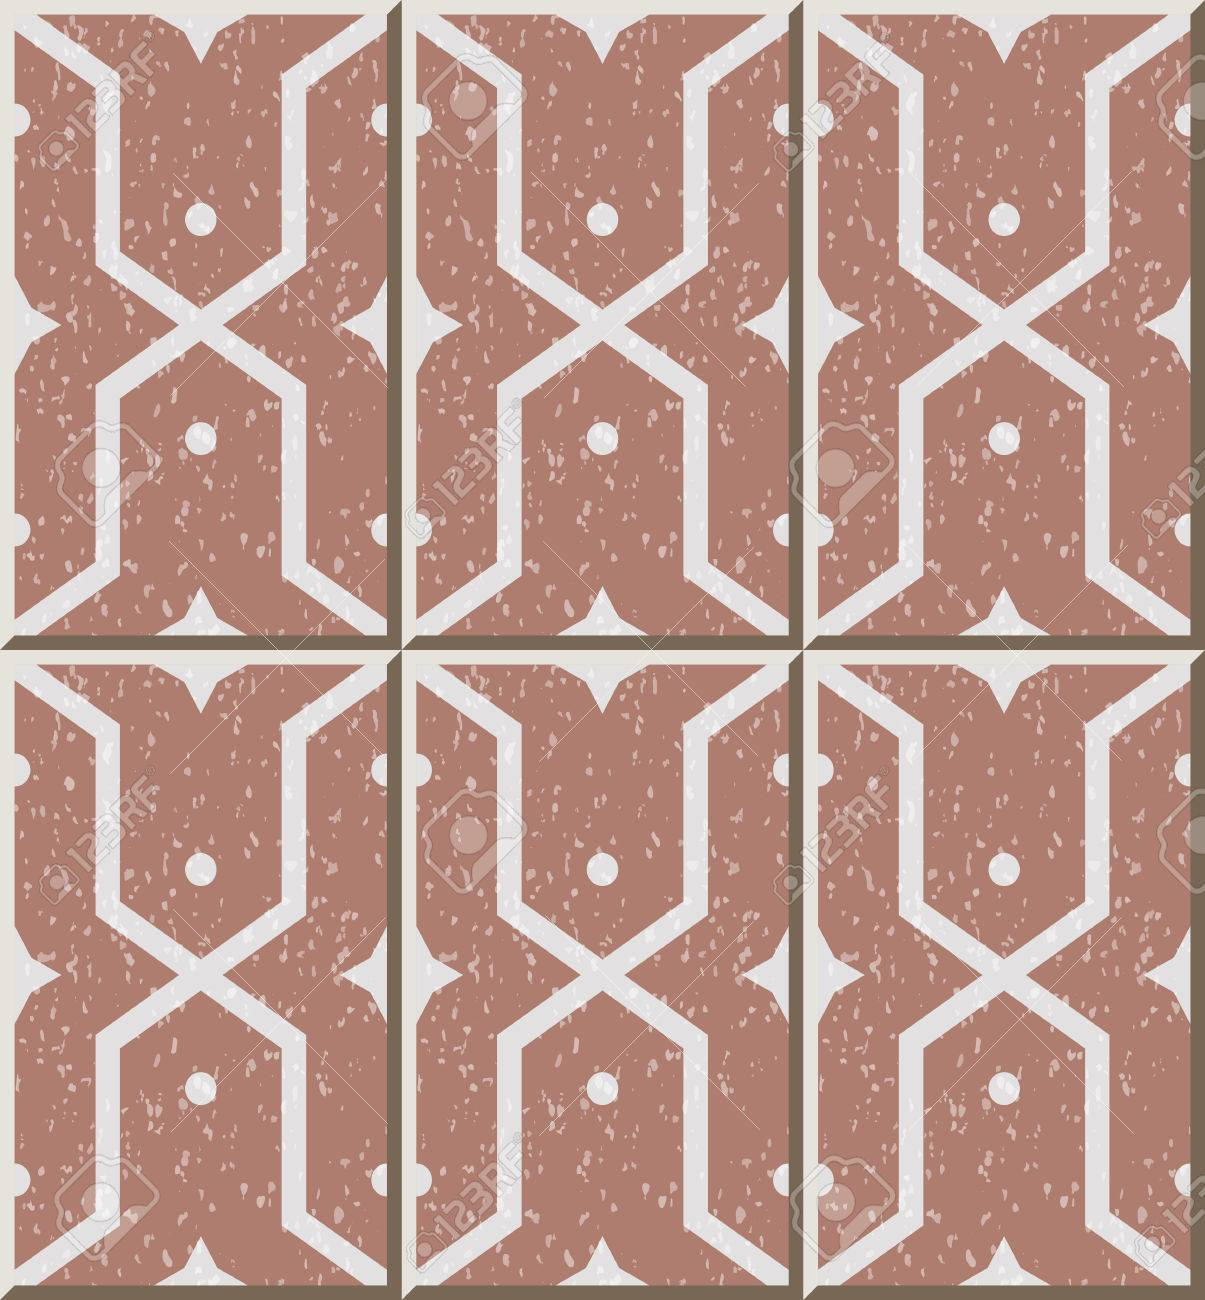 Circular ceramic tiles images tile flooring design ideas round ceramic tiles gallery tile flooring design ideas ceramic tile pattern 493 star round geometry cross dailygadgetfo Image collections